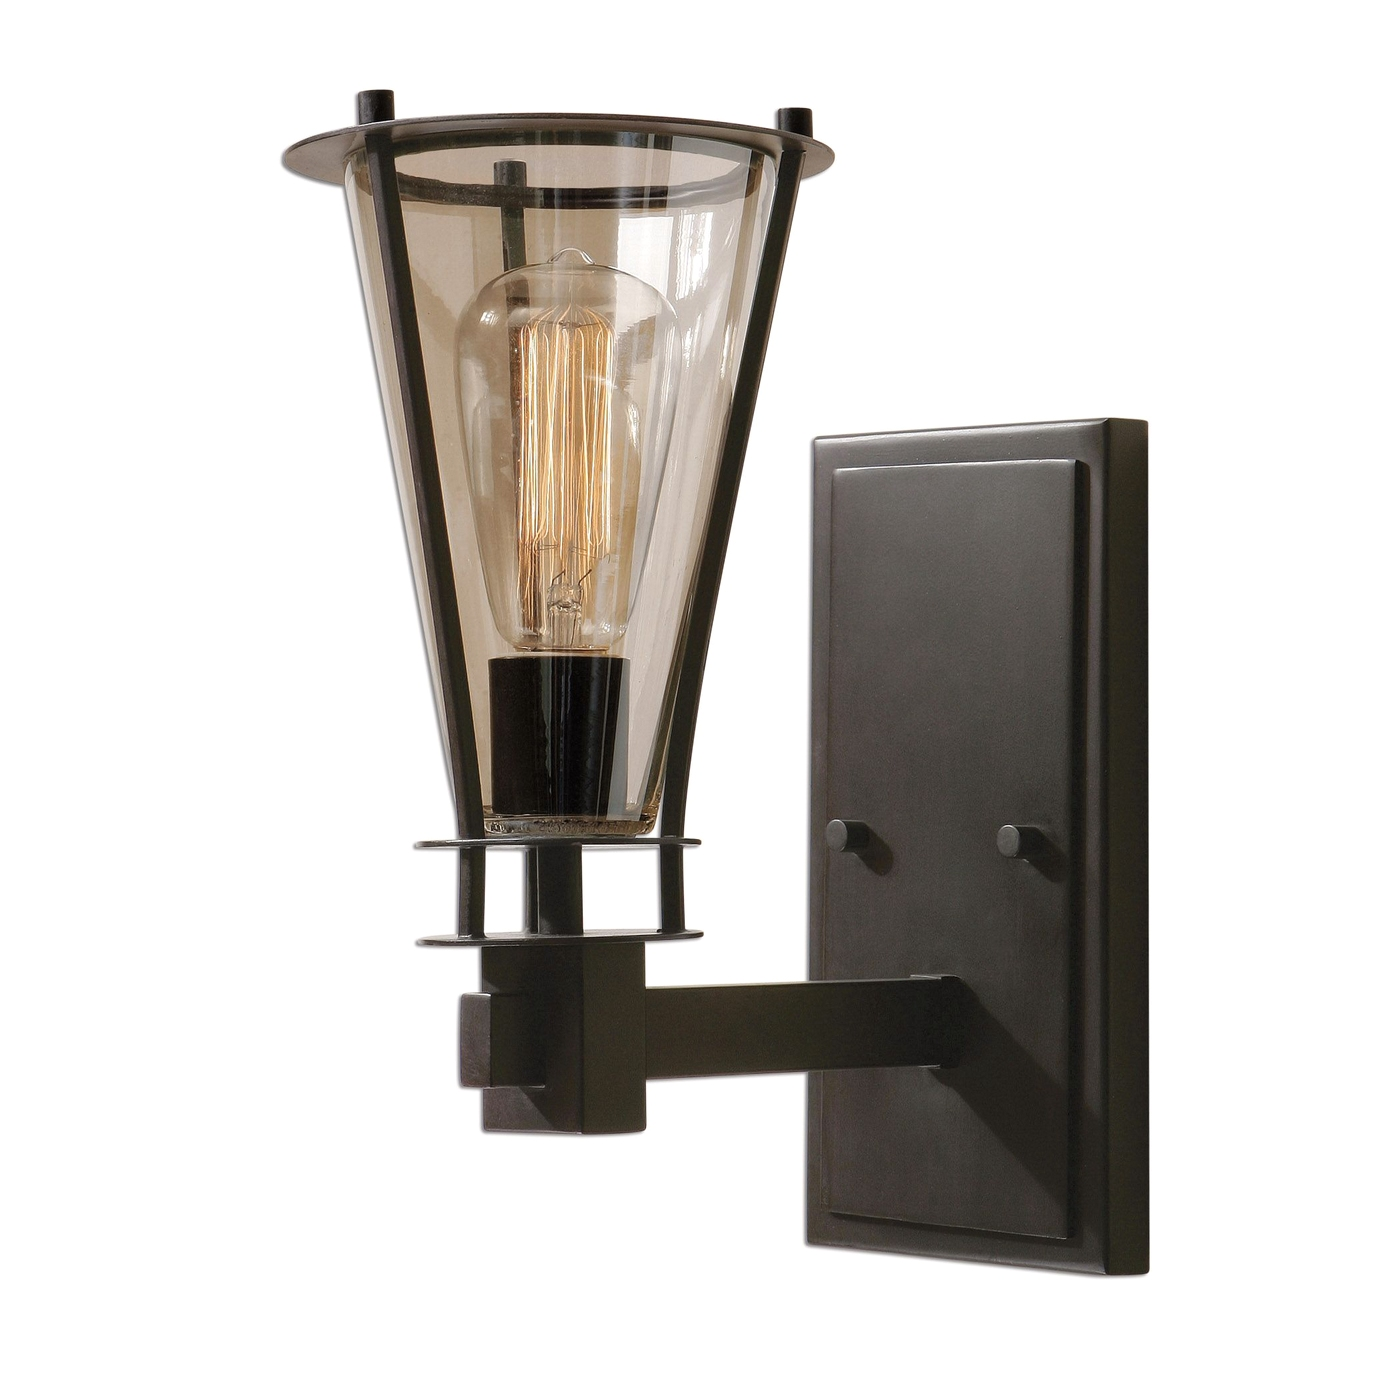 Frisco Rustic 1 Light Rustic Wall Sconce 22492 on Rustic Wall Sconces id=64554